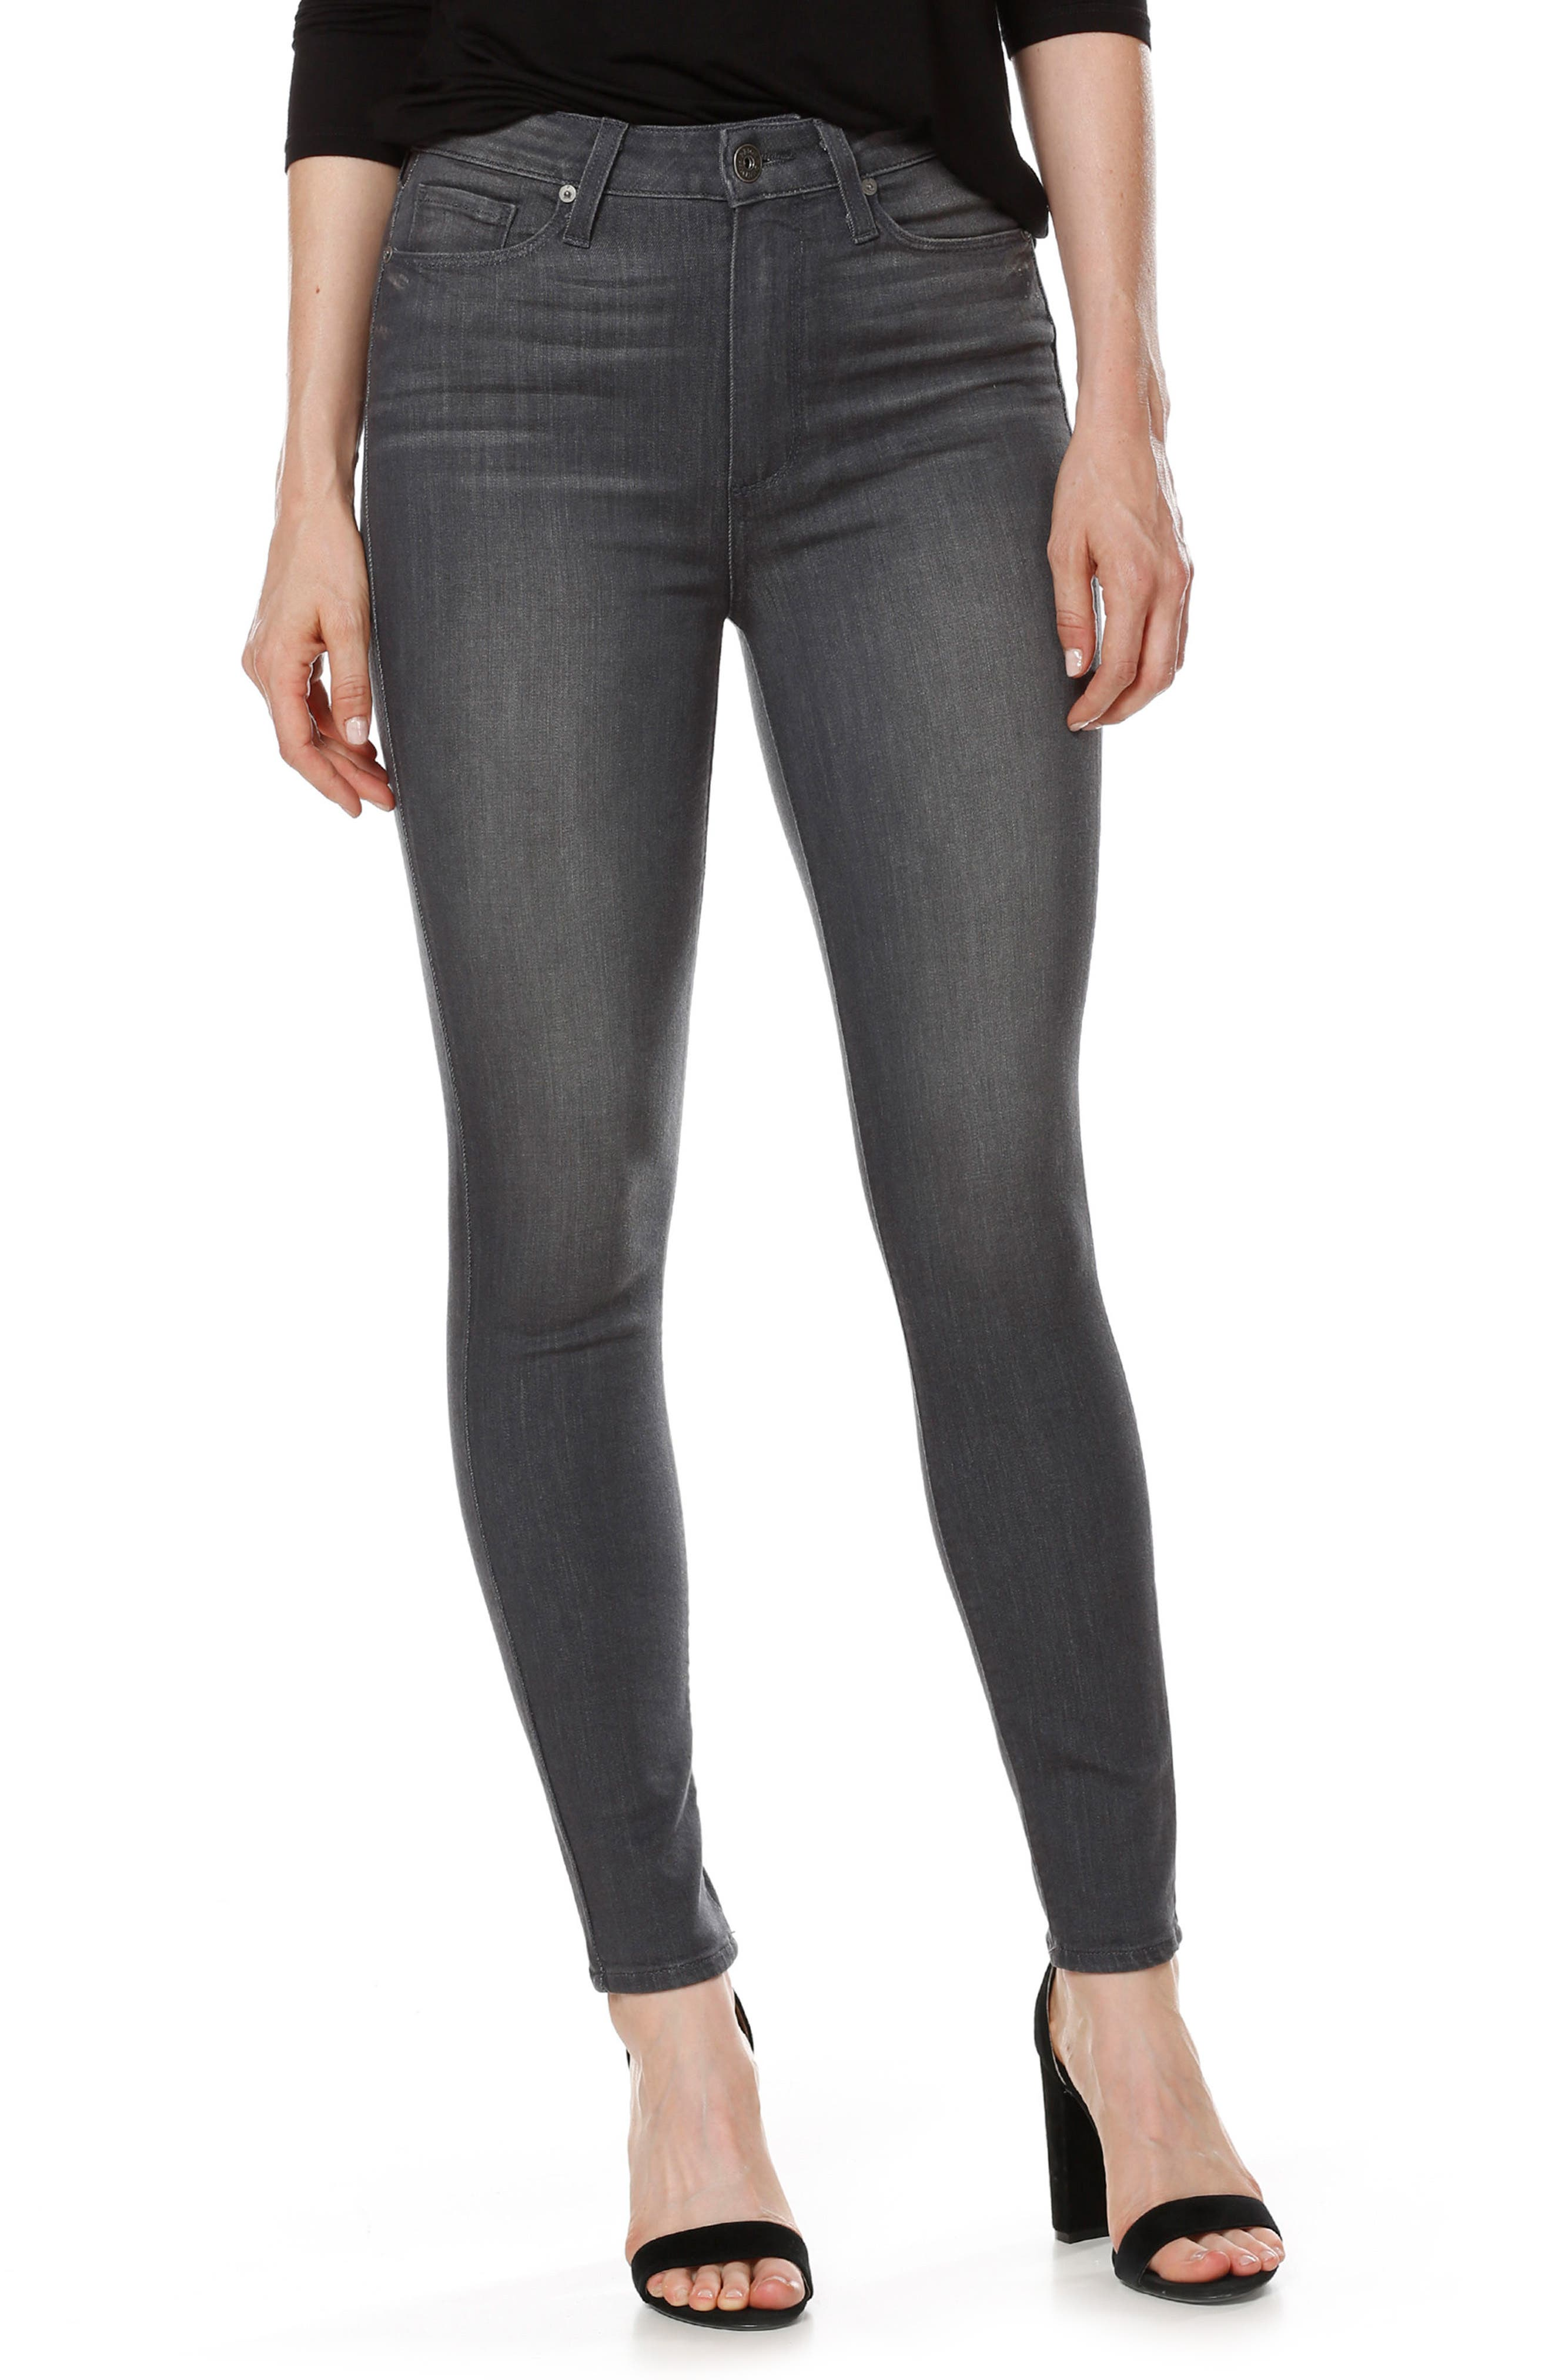 Transcend - Margot High Waist Ankle Ultra Skinny Jeans,                         Main,                         color, Summit Grey